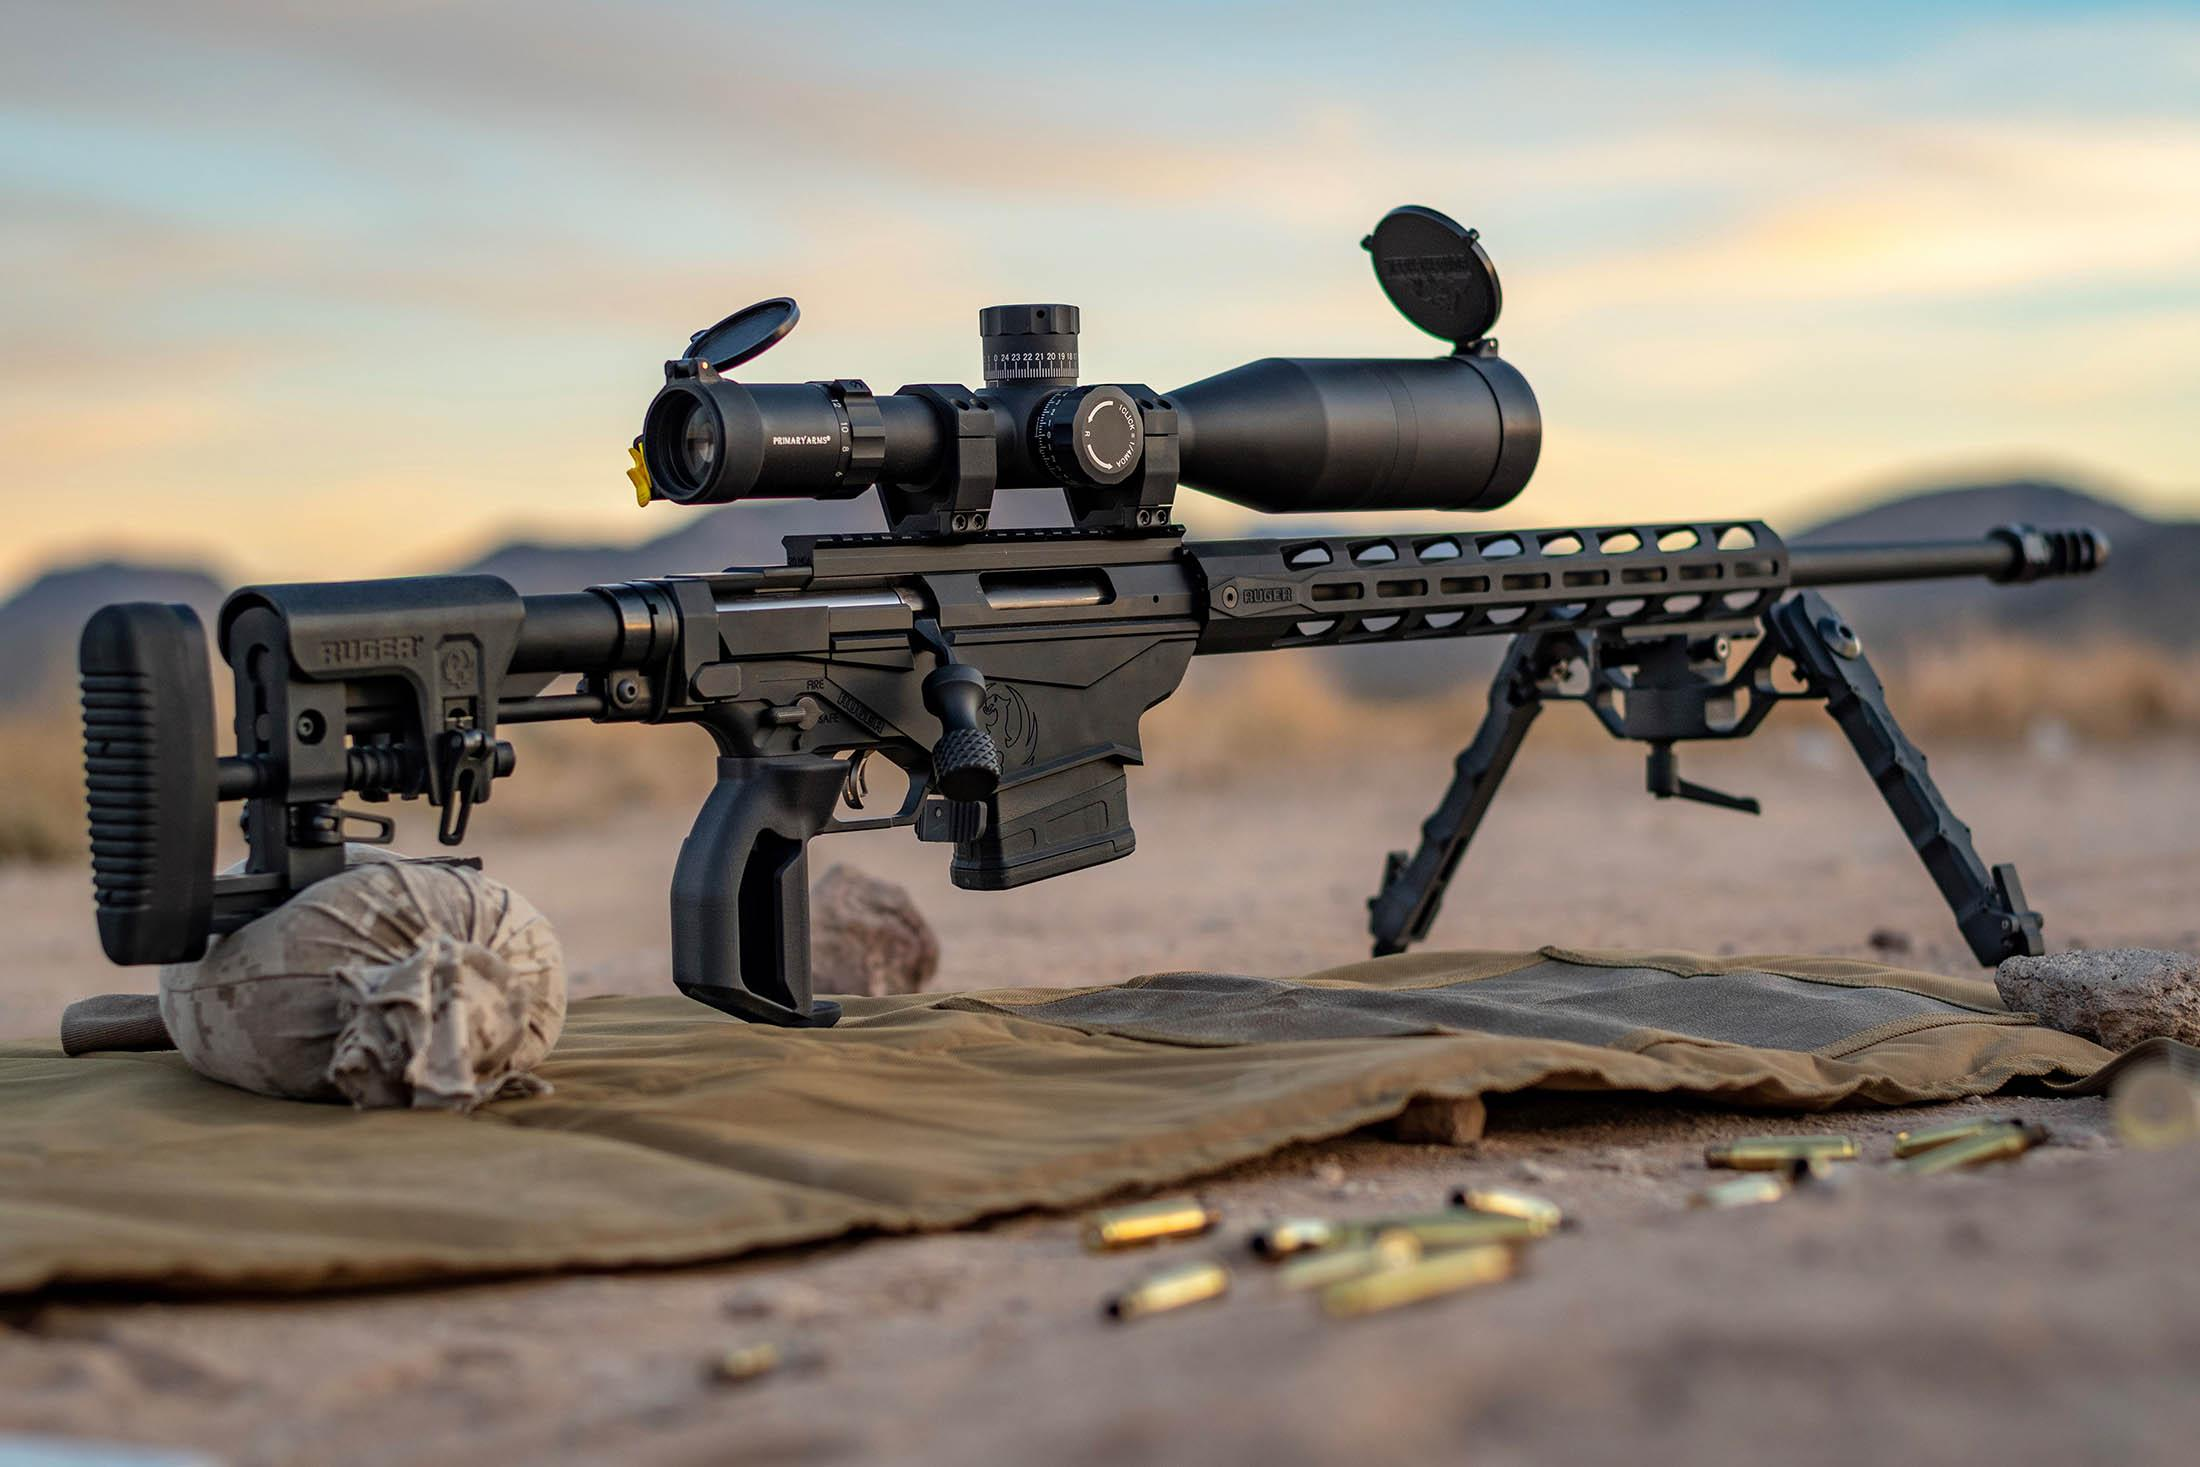 Primary Arms PLX5 6-30x56mm precision rifle scope with Athena BRP MIL reticle on a custom precision rifle